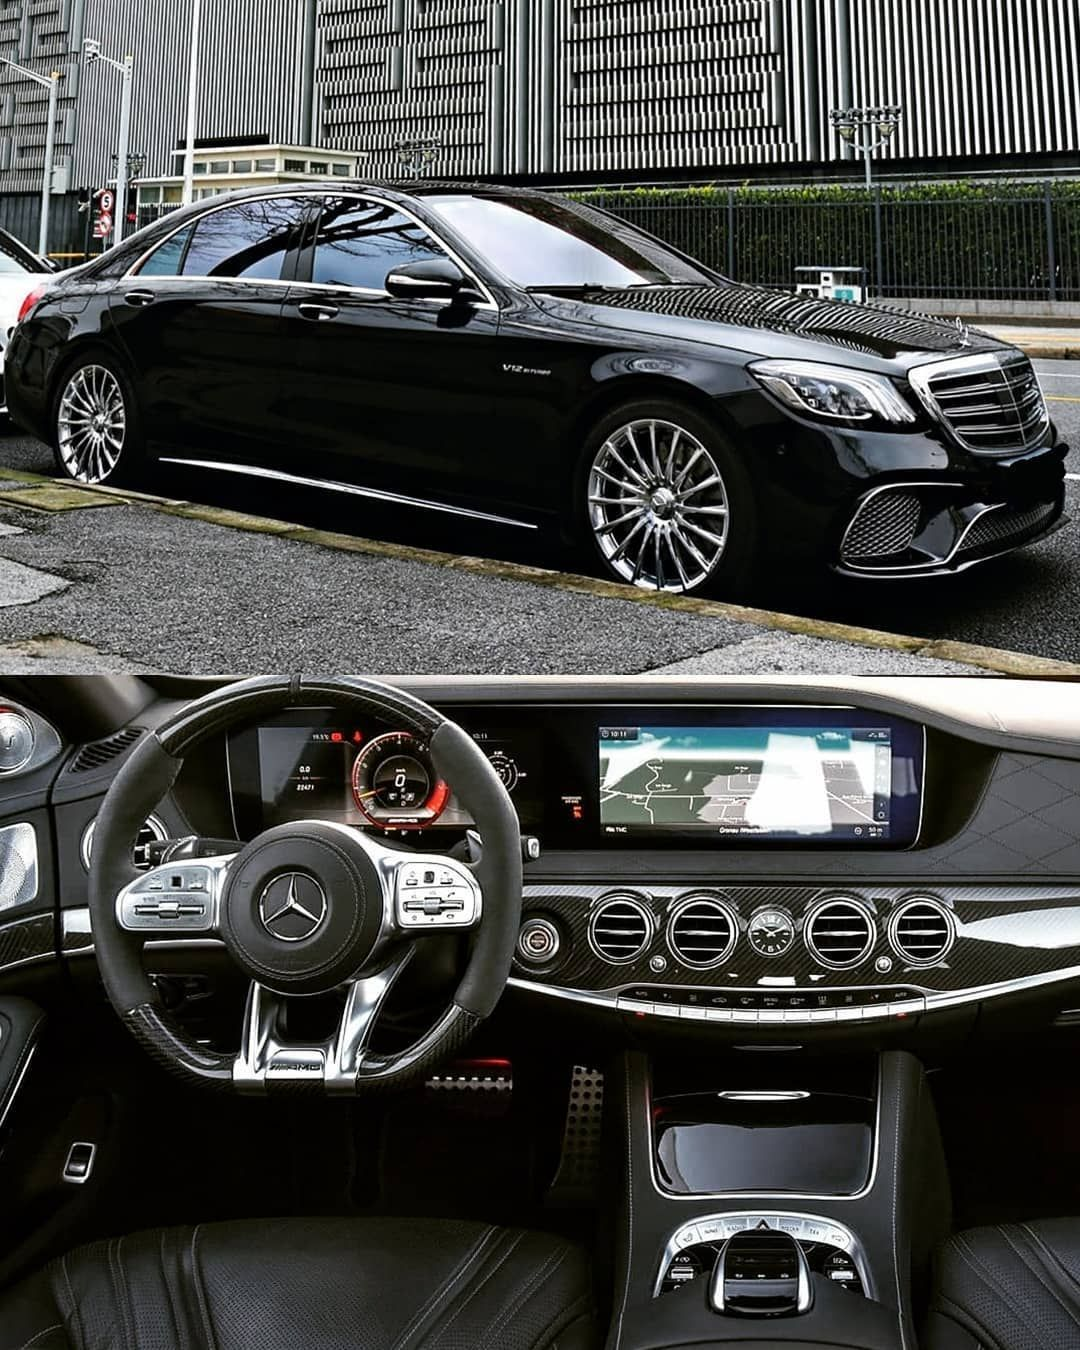 Luxury Is A Lifestyle On Instagram Mercedes Benz S65 Amg V12 Biturbo Mercedes Benz Cars Mercedes Benz Maybach Mercedes Car